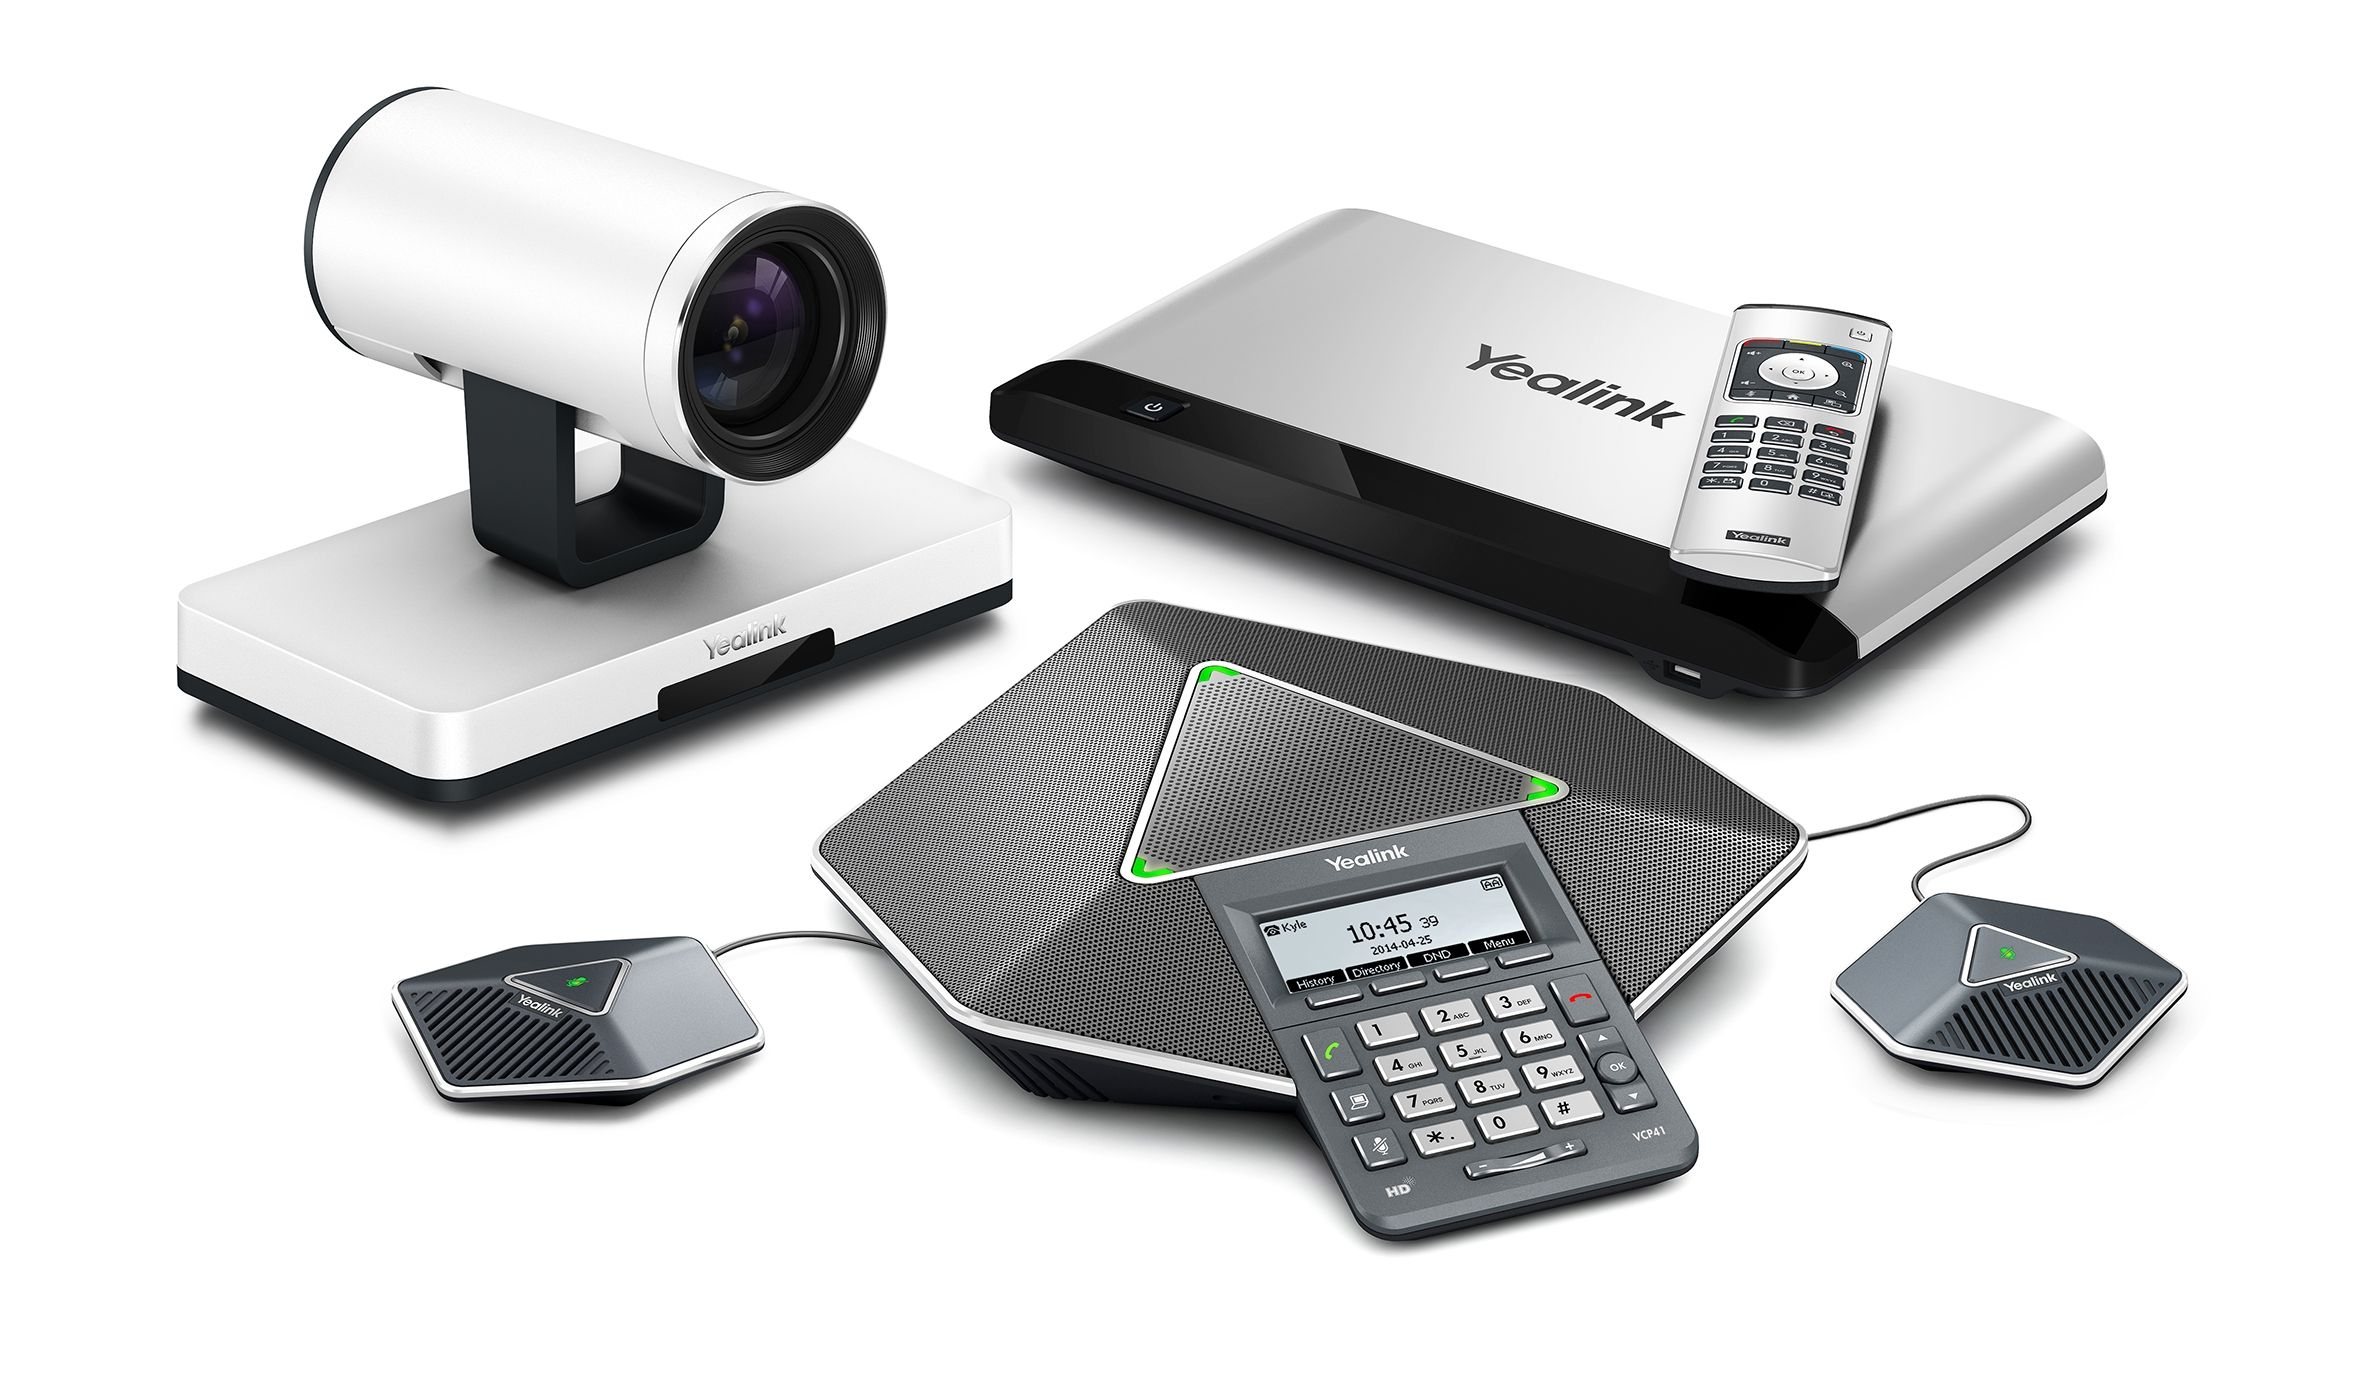 Yealink VC120 Room System with 12x Camera/Phone